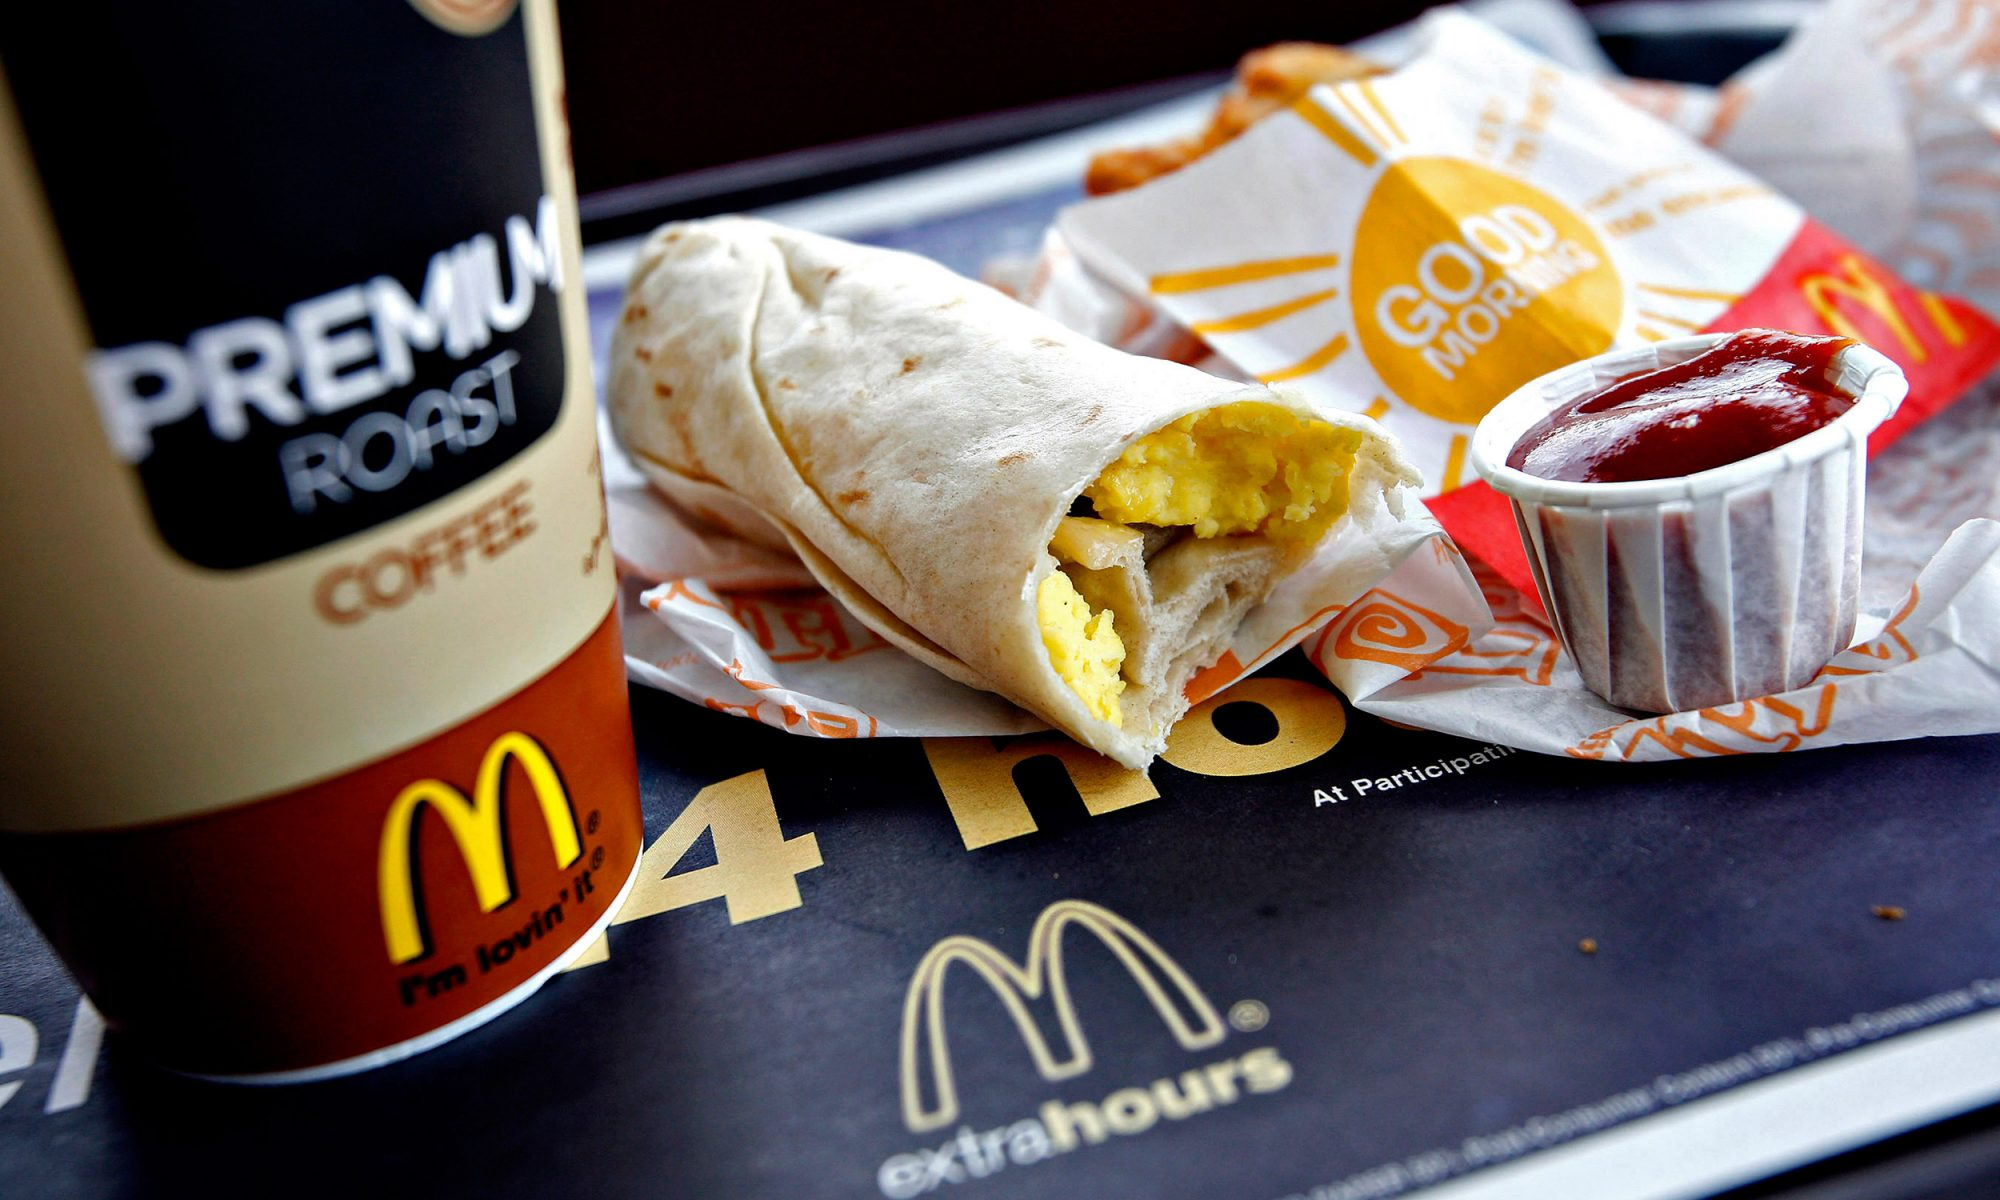 EC: McDonald's All-Day Breakfast Is Driving Sales, but the Company Needs Another Hit